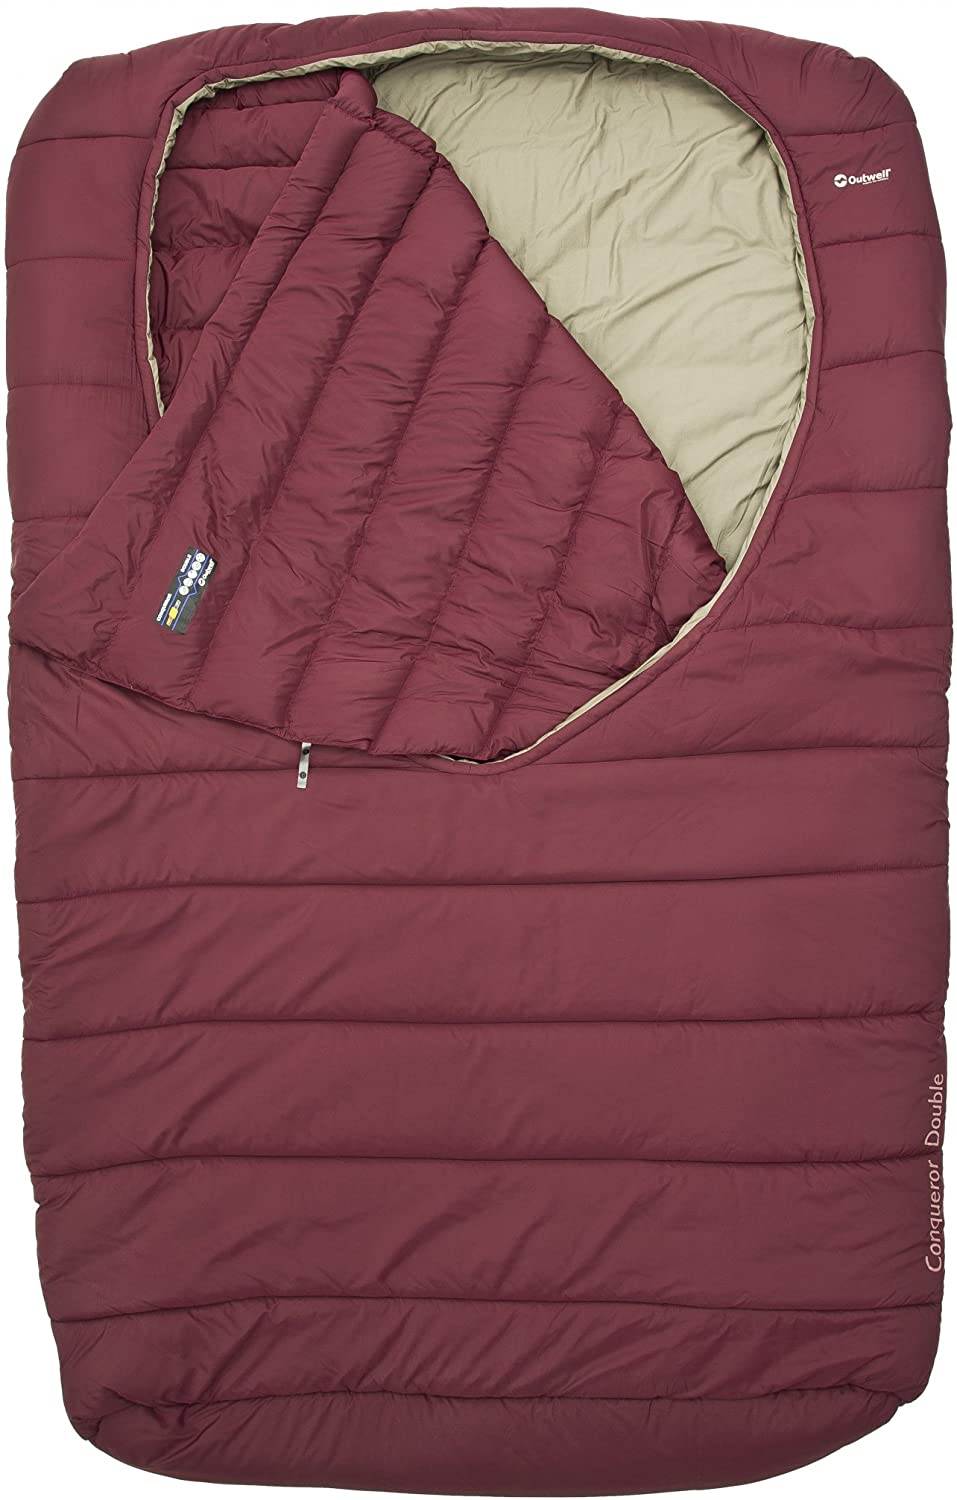 Outwell - Conqueror Double Sleeping Bag